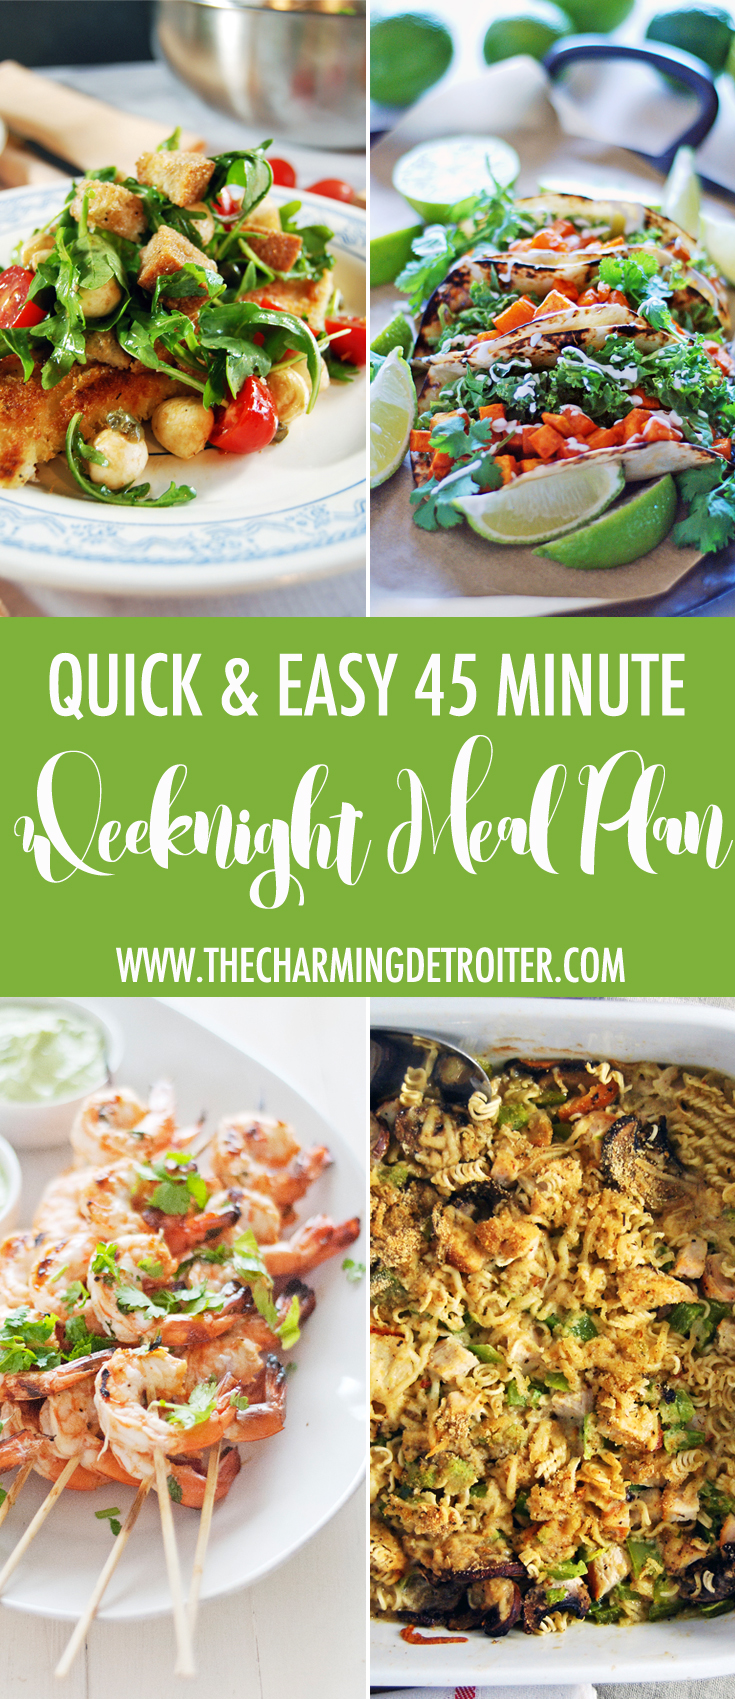 Weeknight meal planning can be a challenge, so save time with my week full of 45 minute meals, including full grocery list!